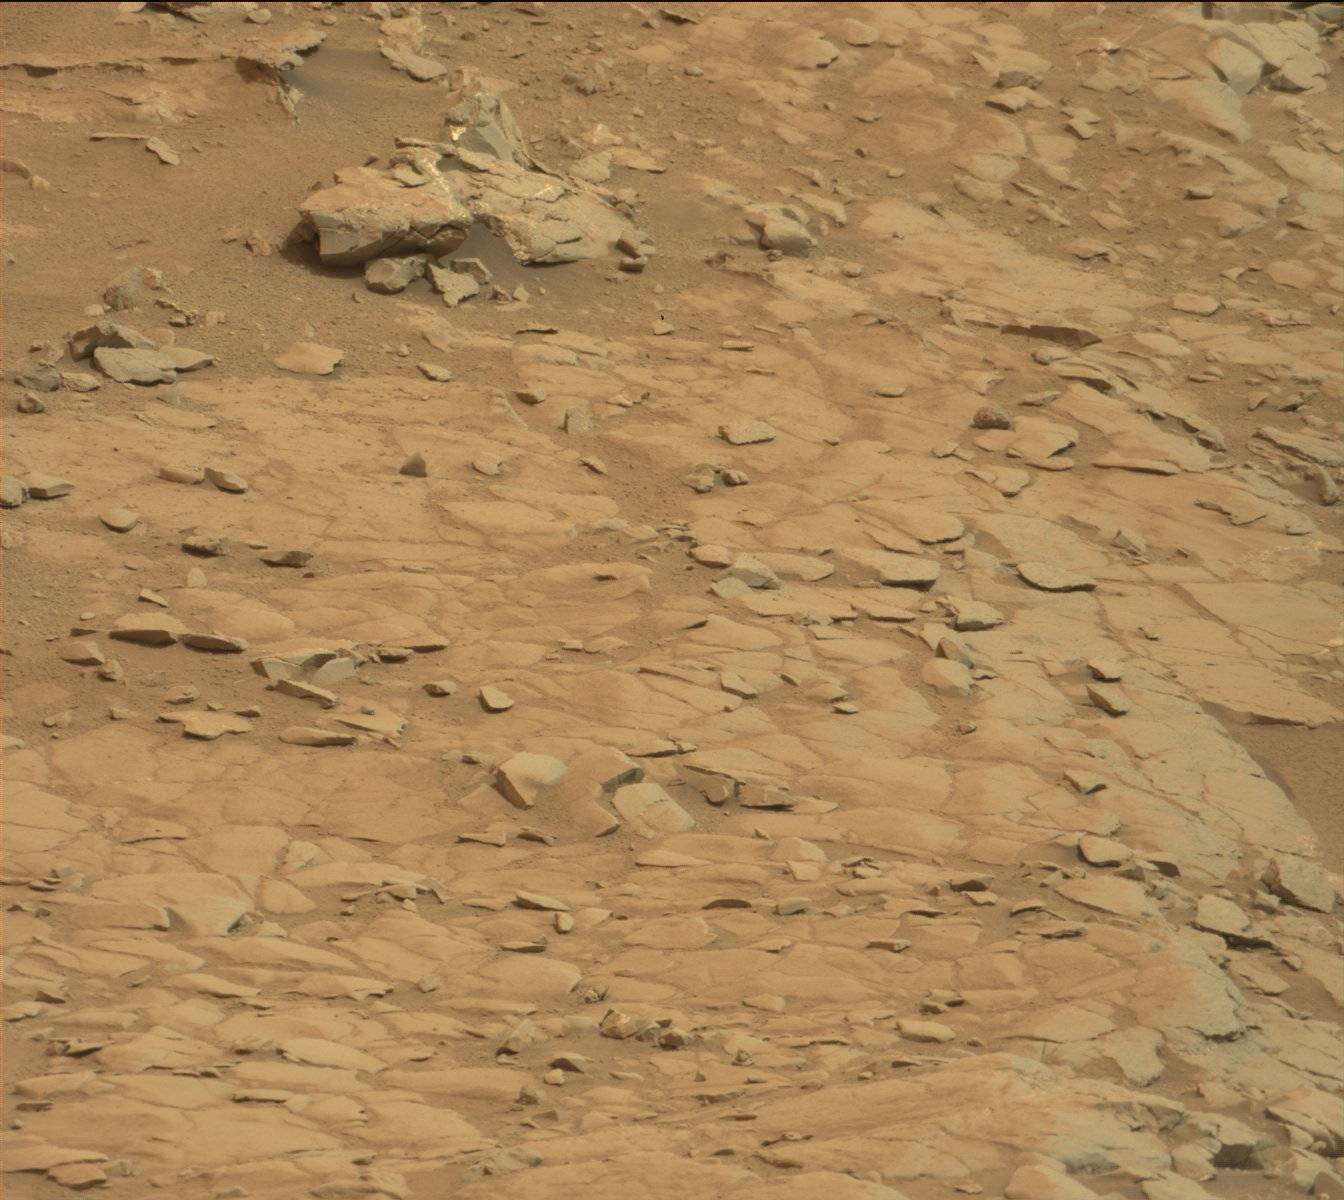 Nasa s mars rover curiosity acquired this image using its mast camera